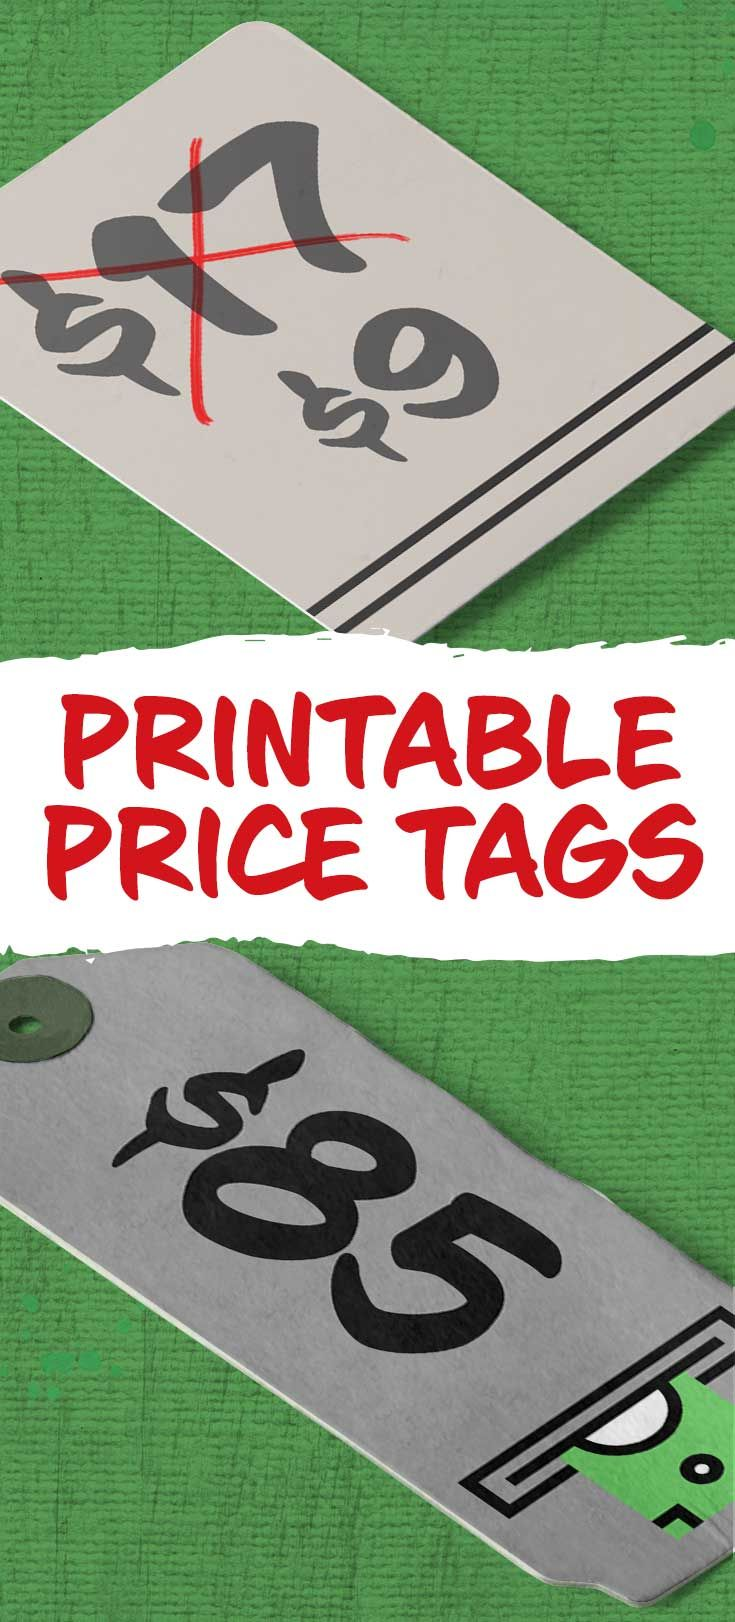 Download Free Printable Price Tags From Free Printables Online Printable Tags Template Tag Template Free Free Printables